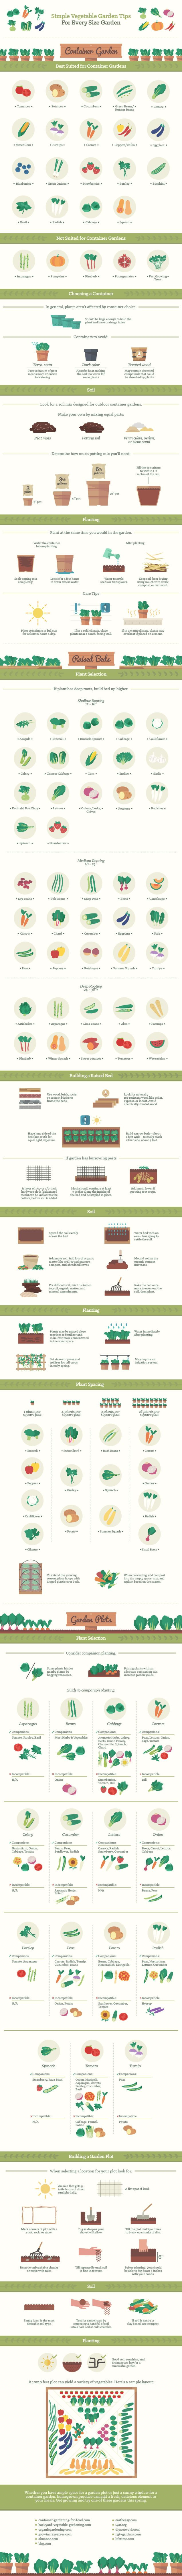 Today's infographic is really the best guide for growing veggies out there. Follow this advice and you will be cookin' up your own gumbo in no time.